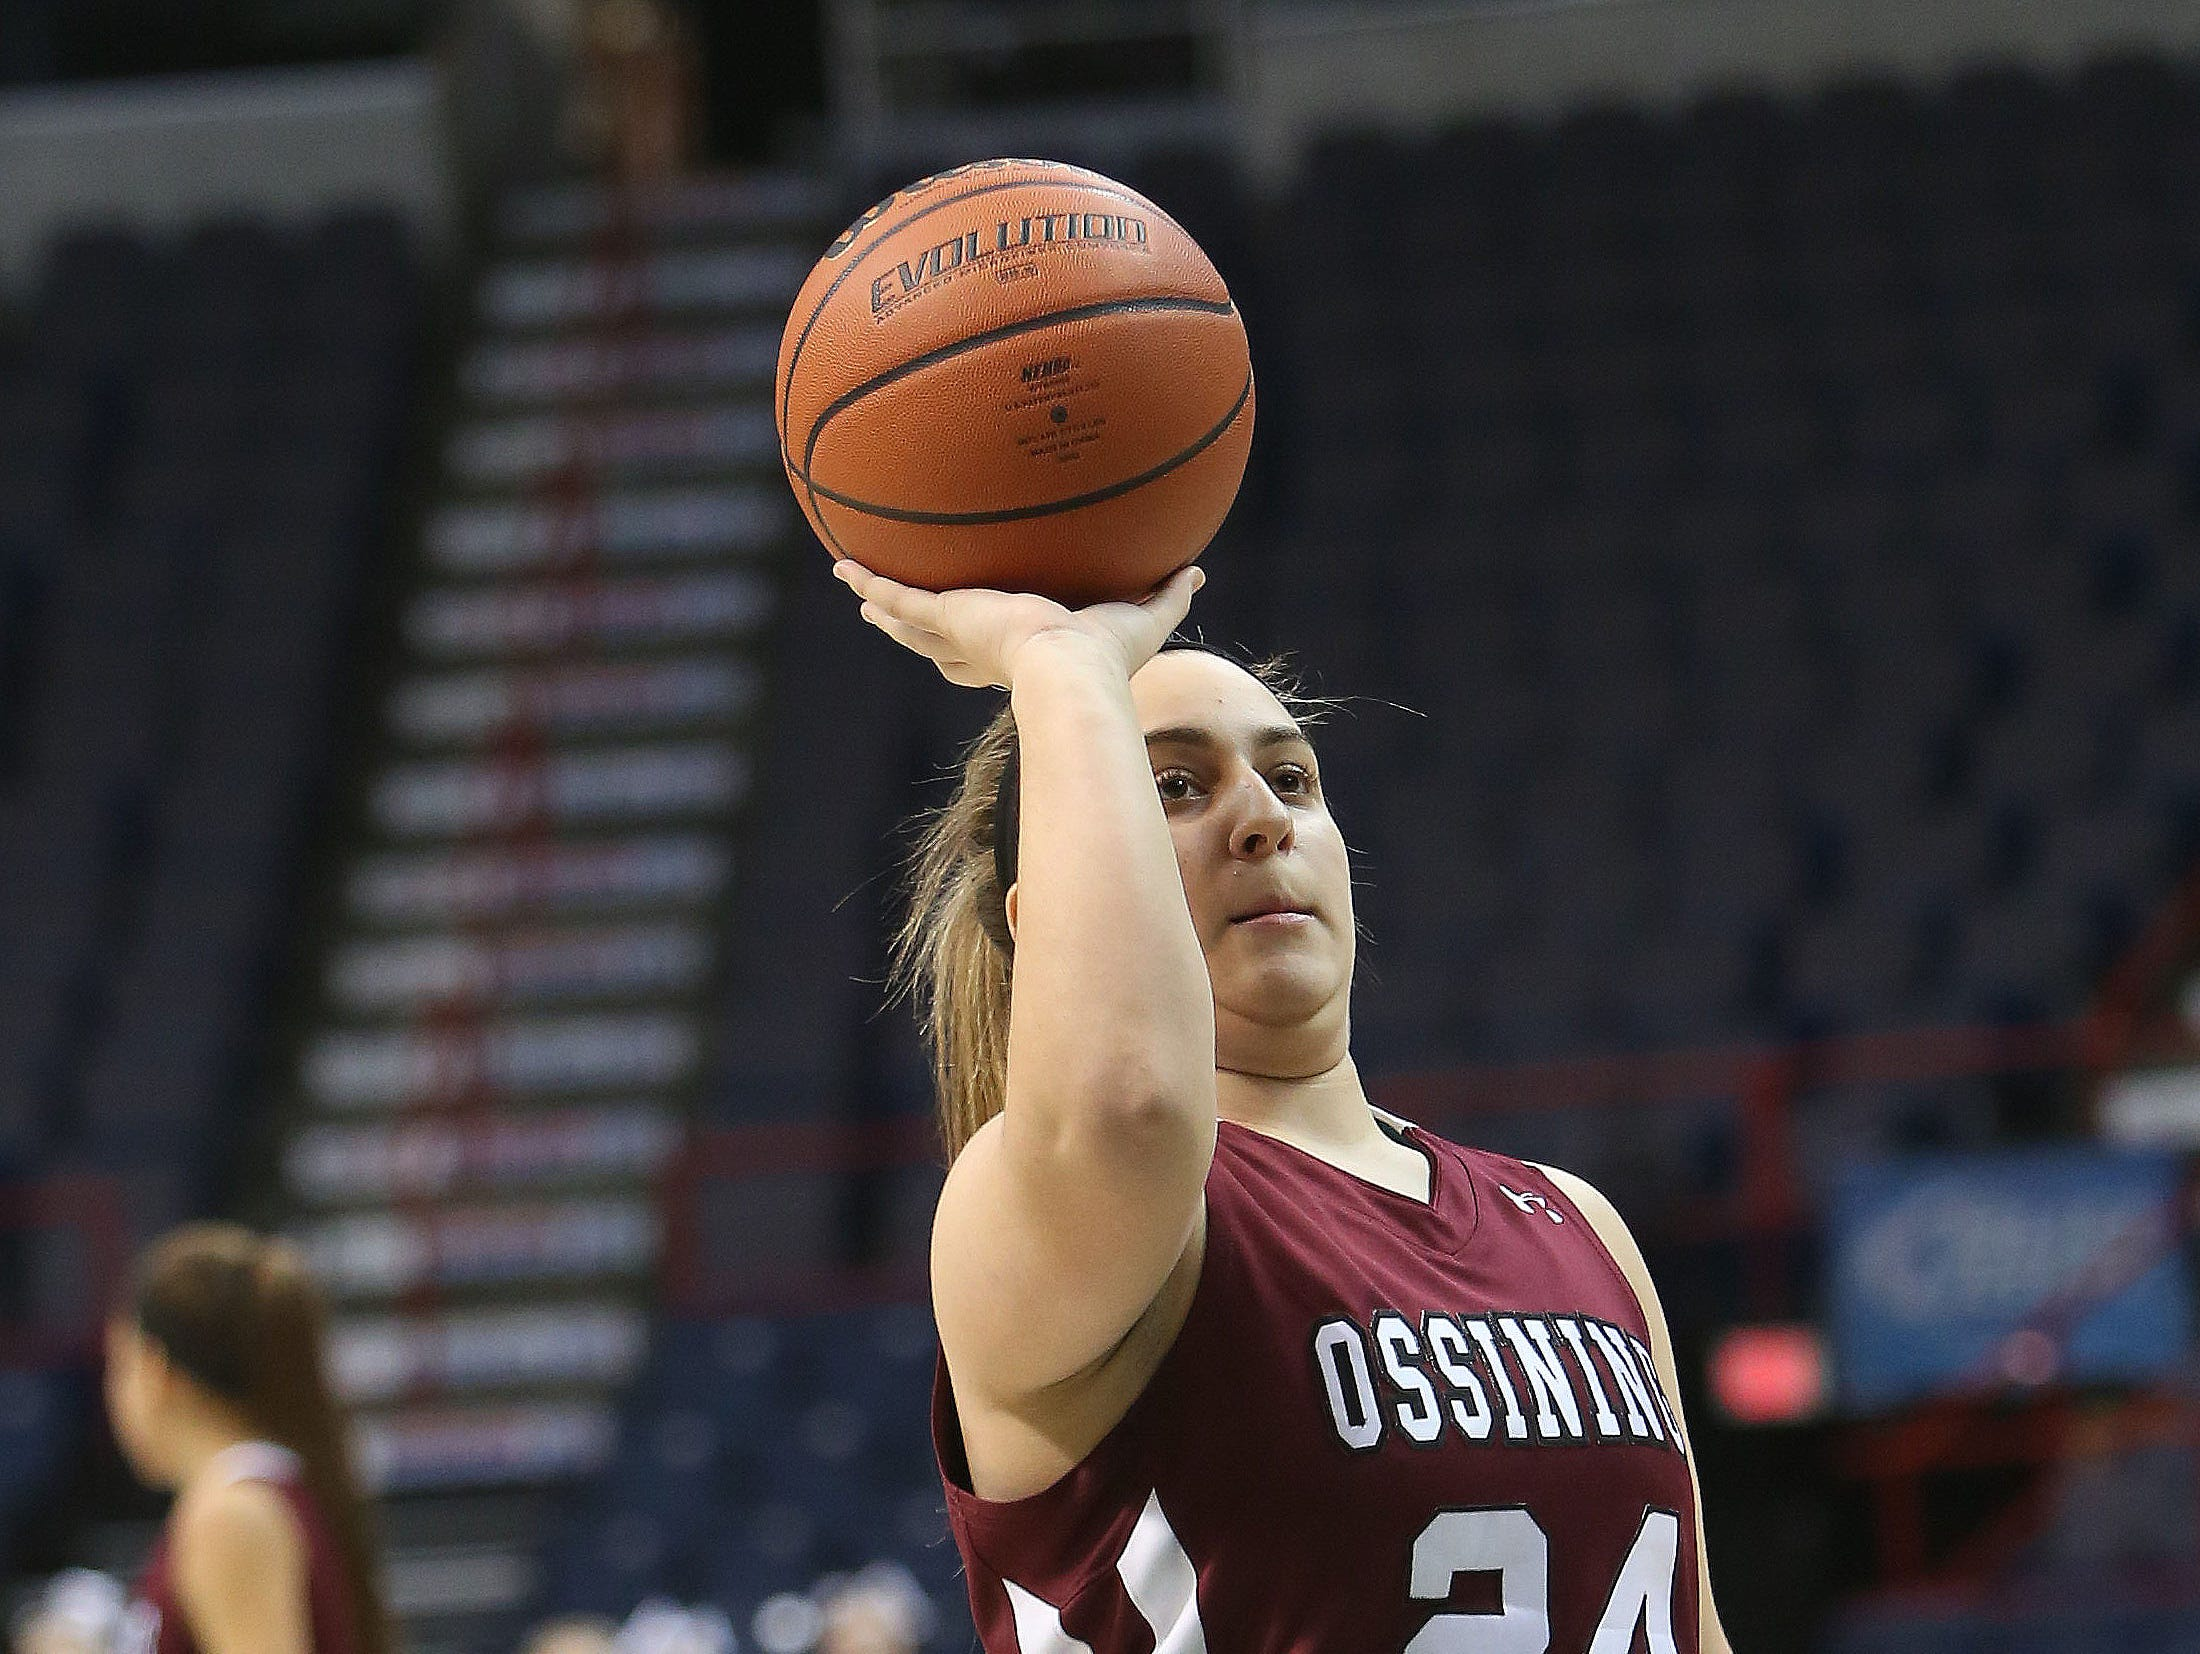 Ossining senior Sam Cozzolino shoots a one-handed free throw in the girls Class AA final of the New York State Federation Tournament of Champions at the Times Union Center in Albany March 19, 2016.